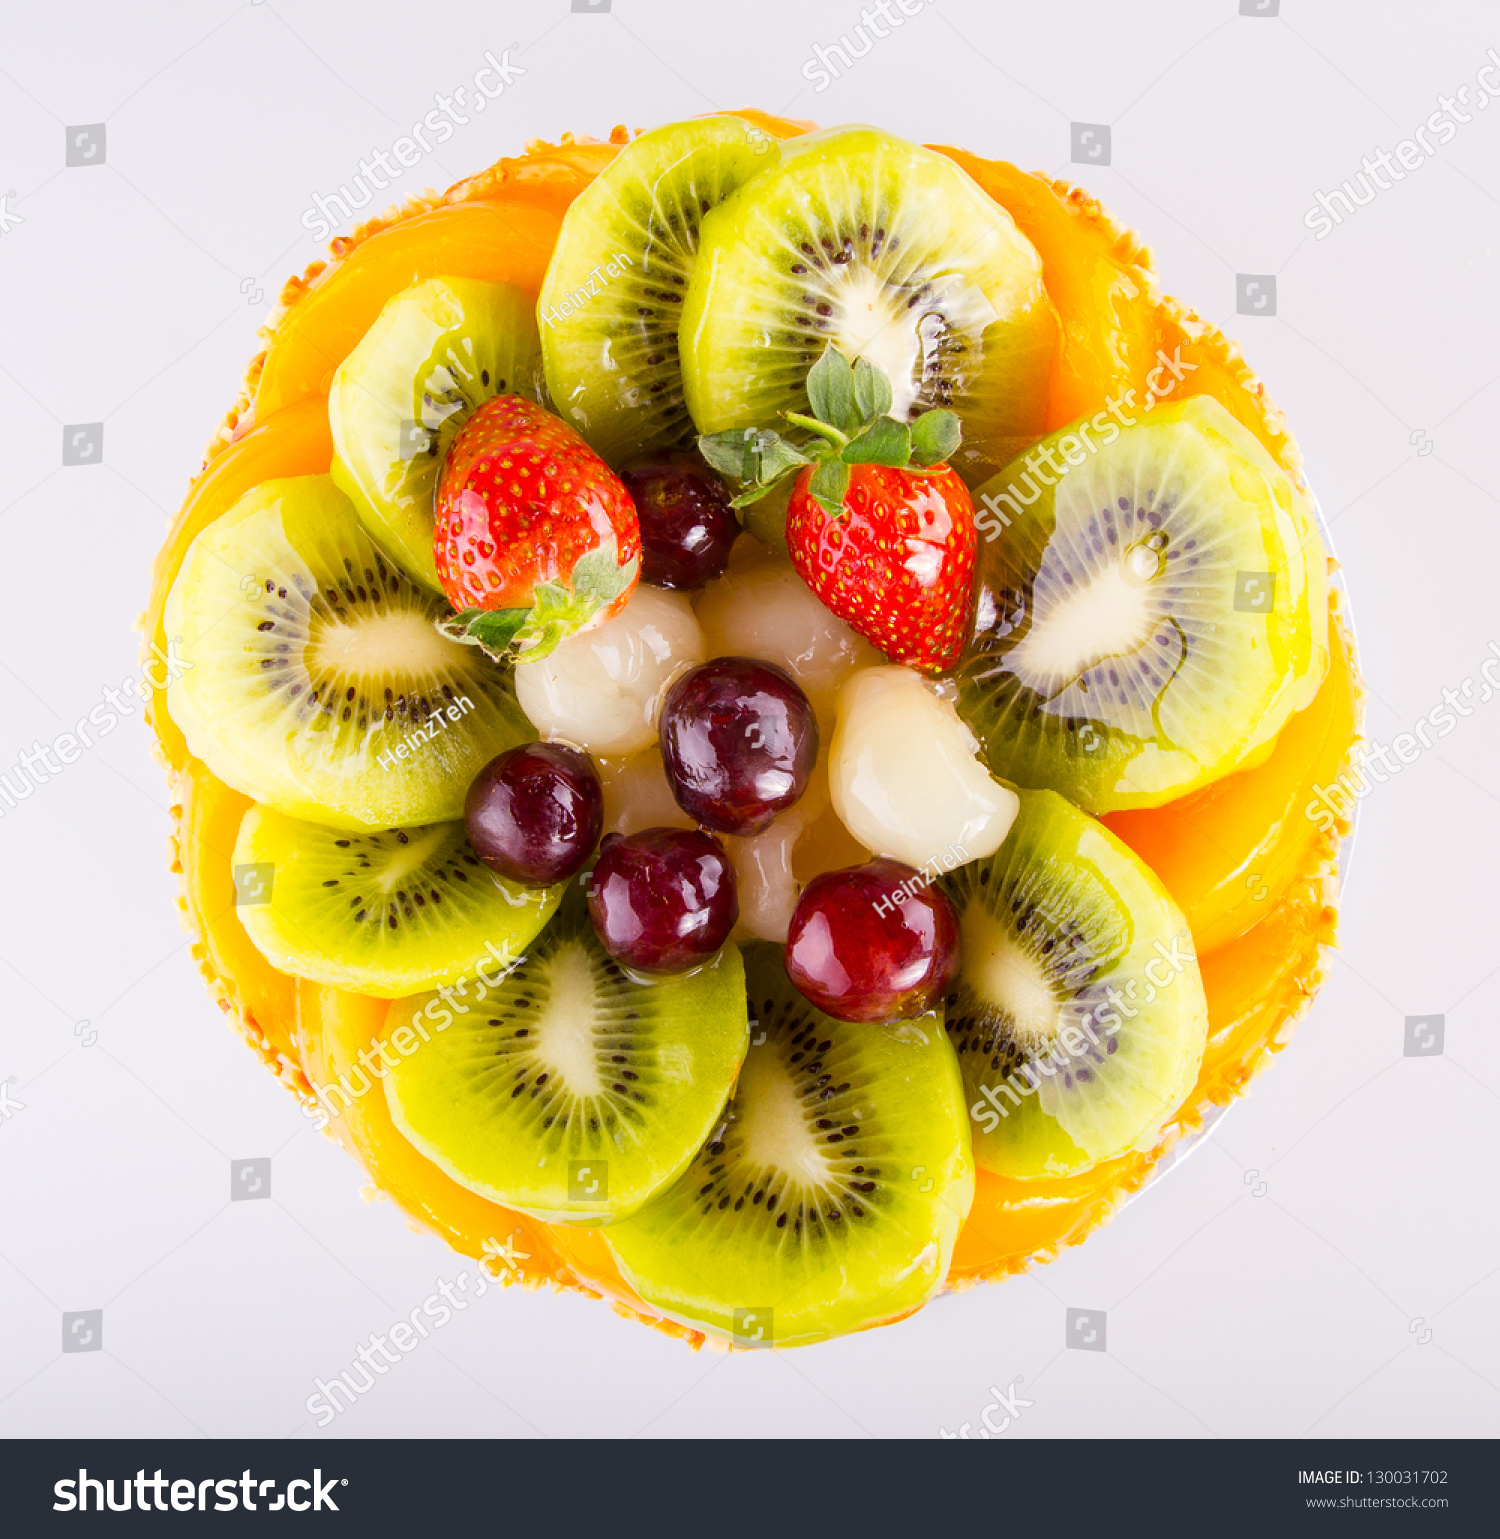 Beautiful Decorated Fruit Cake Stock Photo 130031702 ...